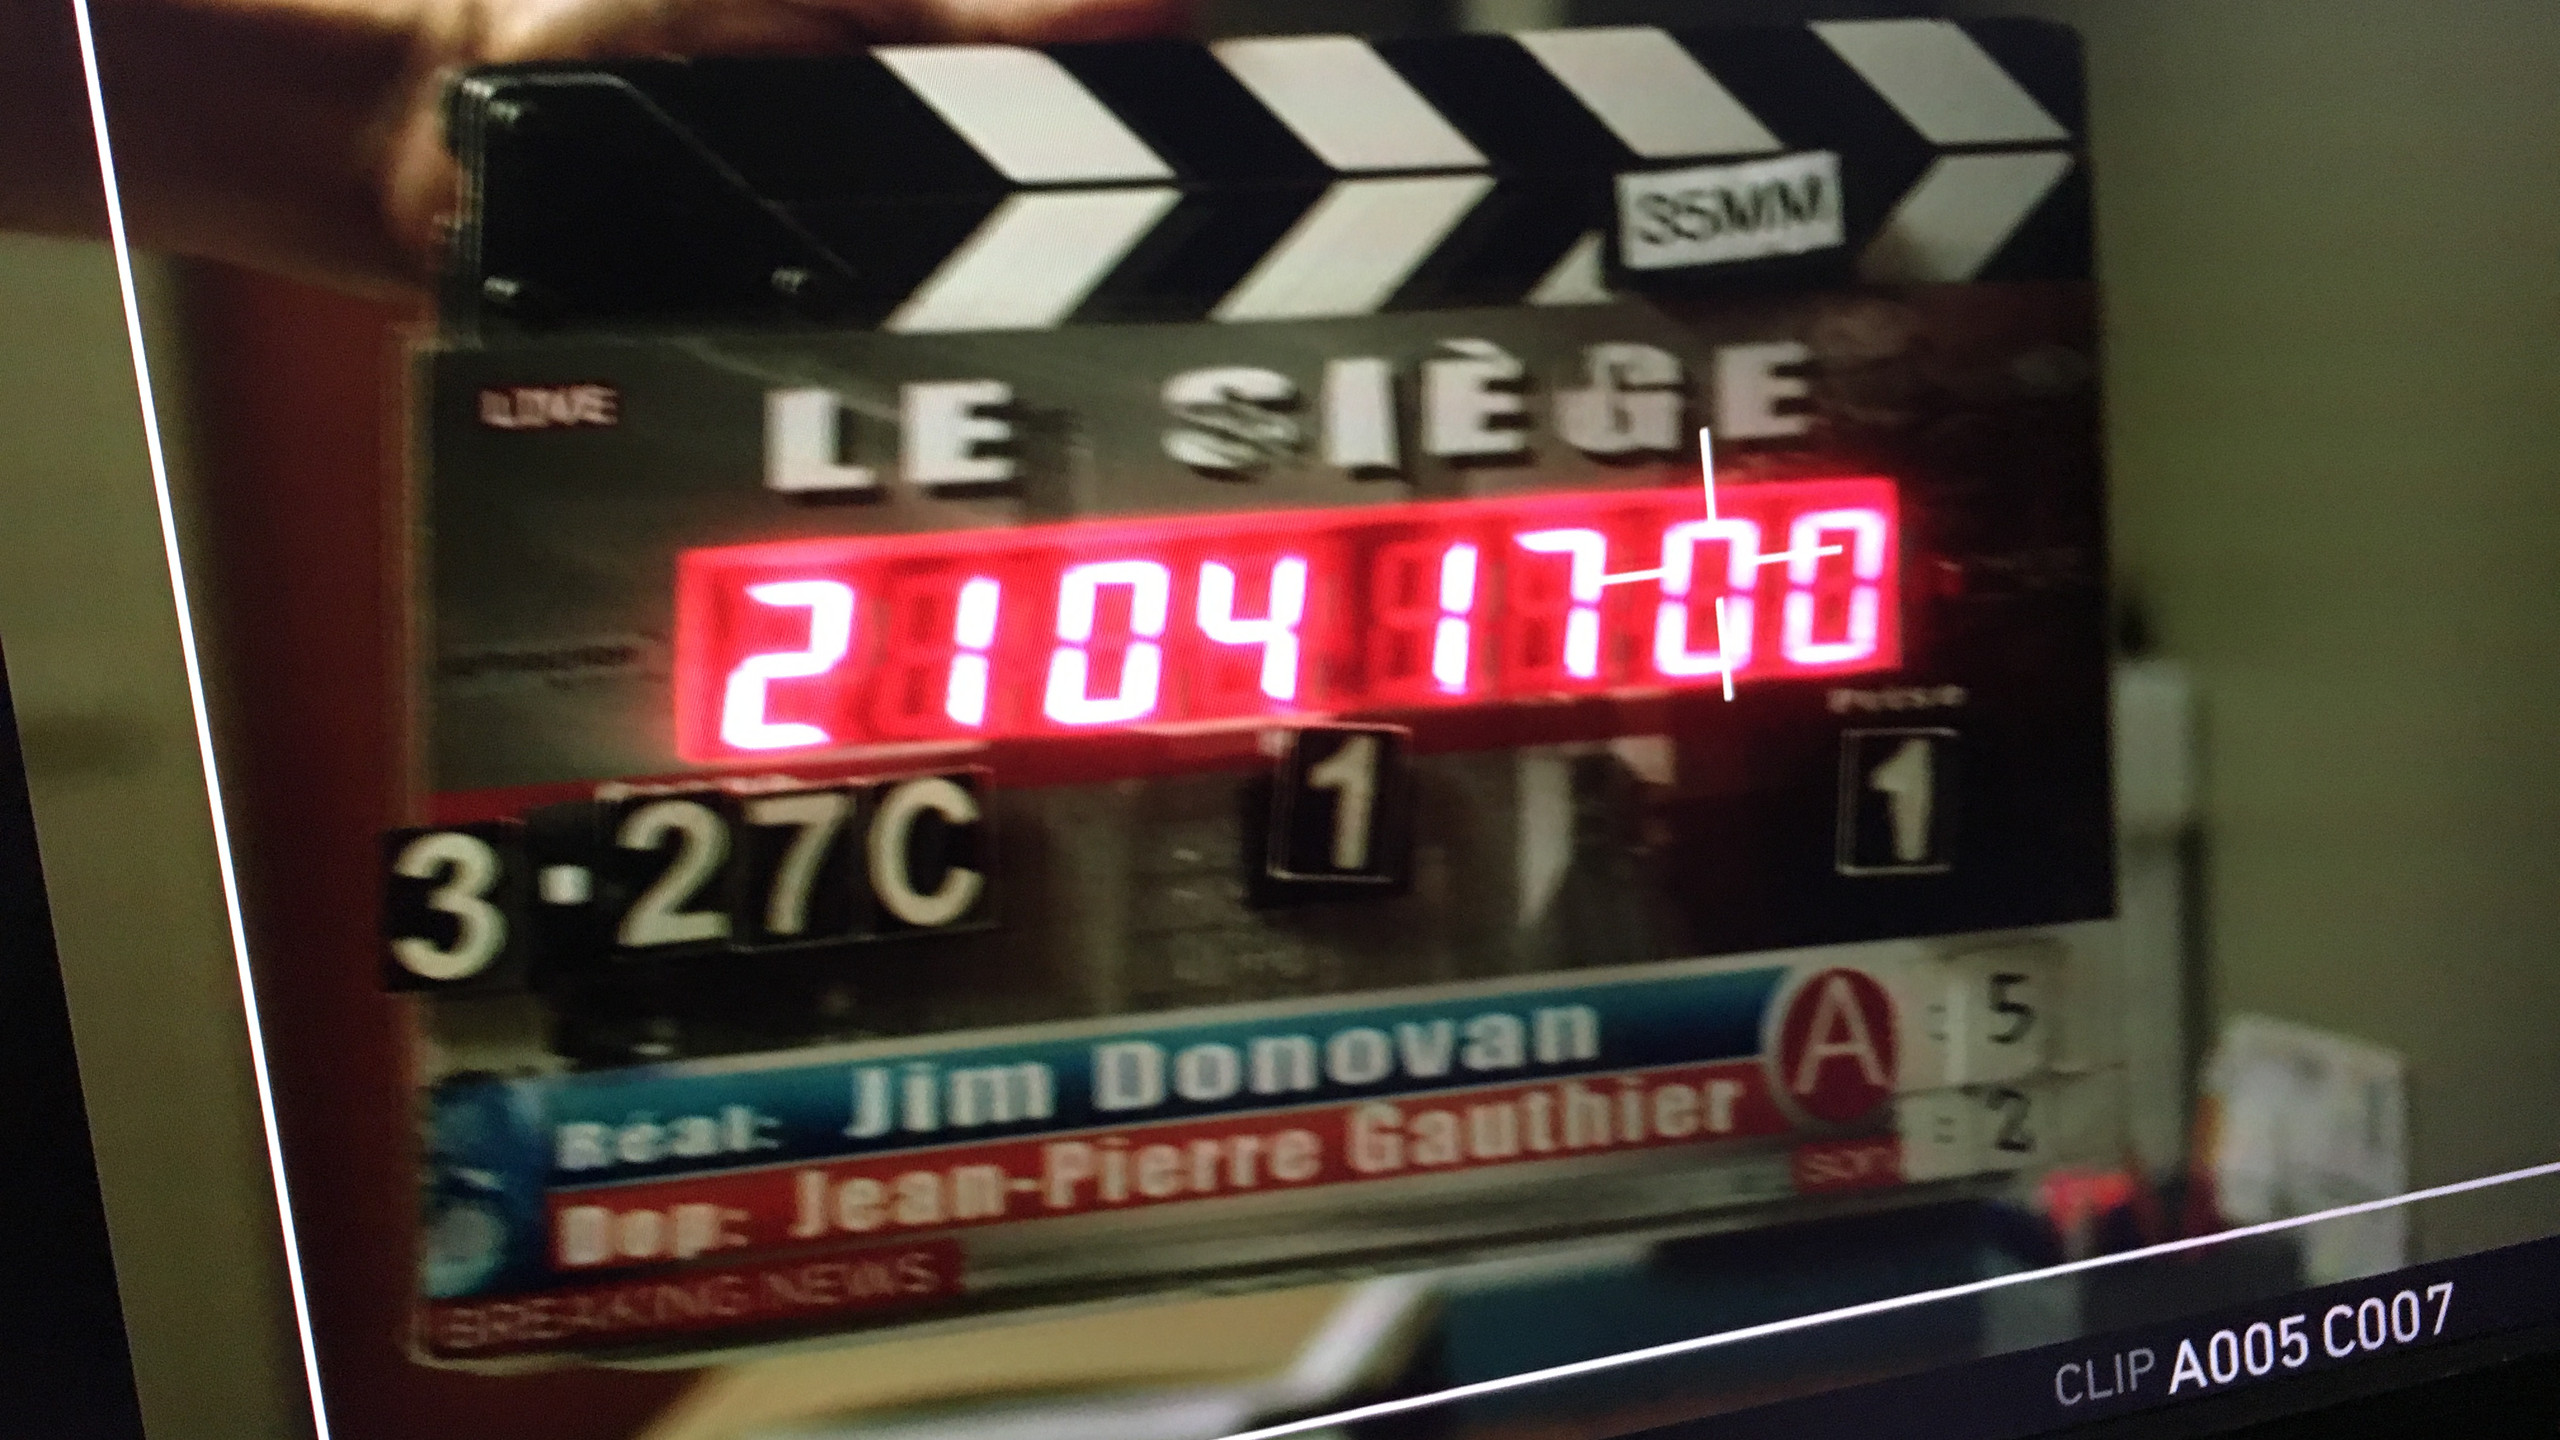 The slate for Le Siège. Moncton May 2017